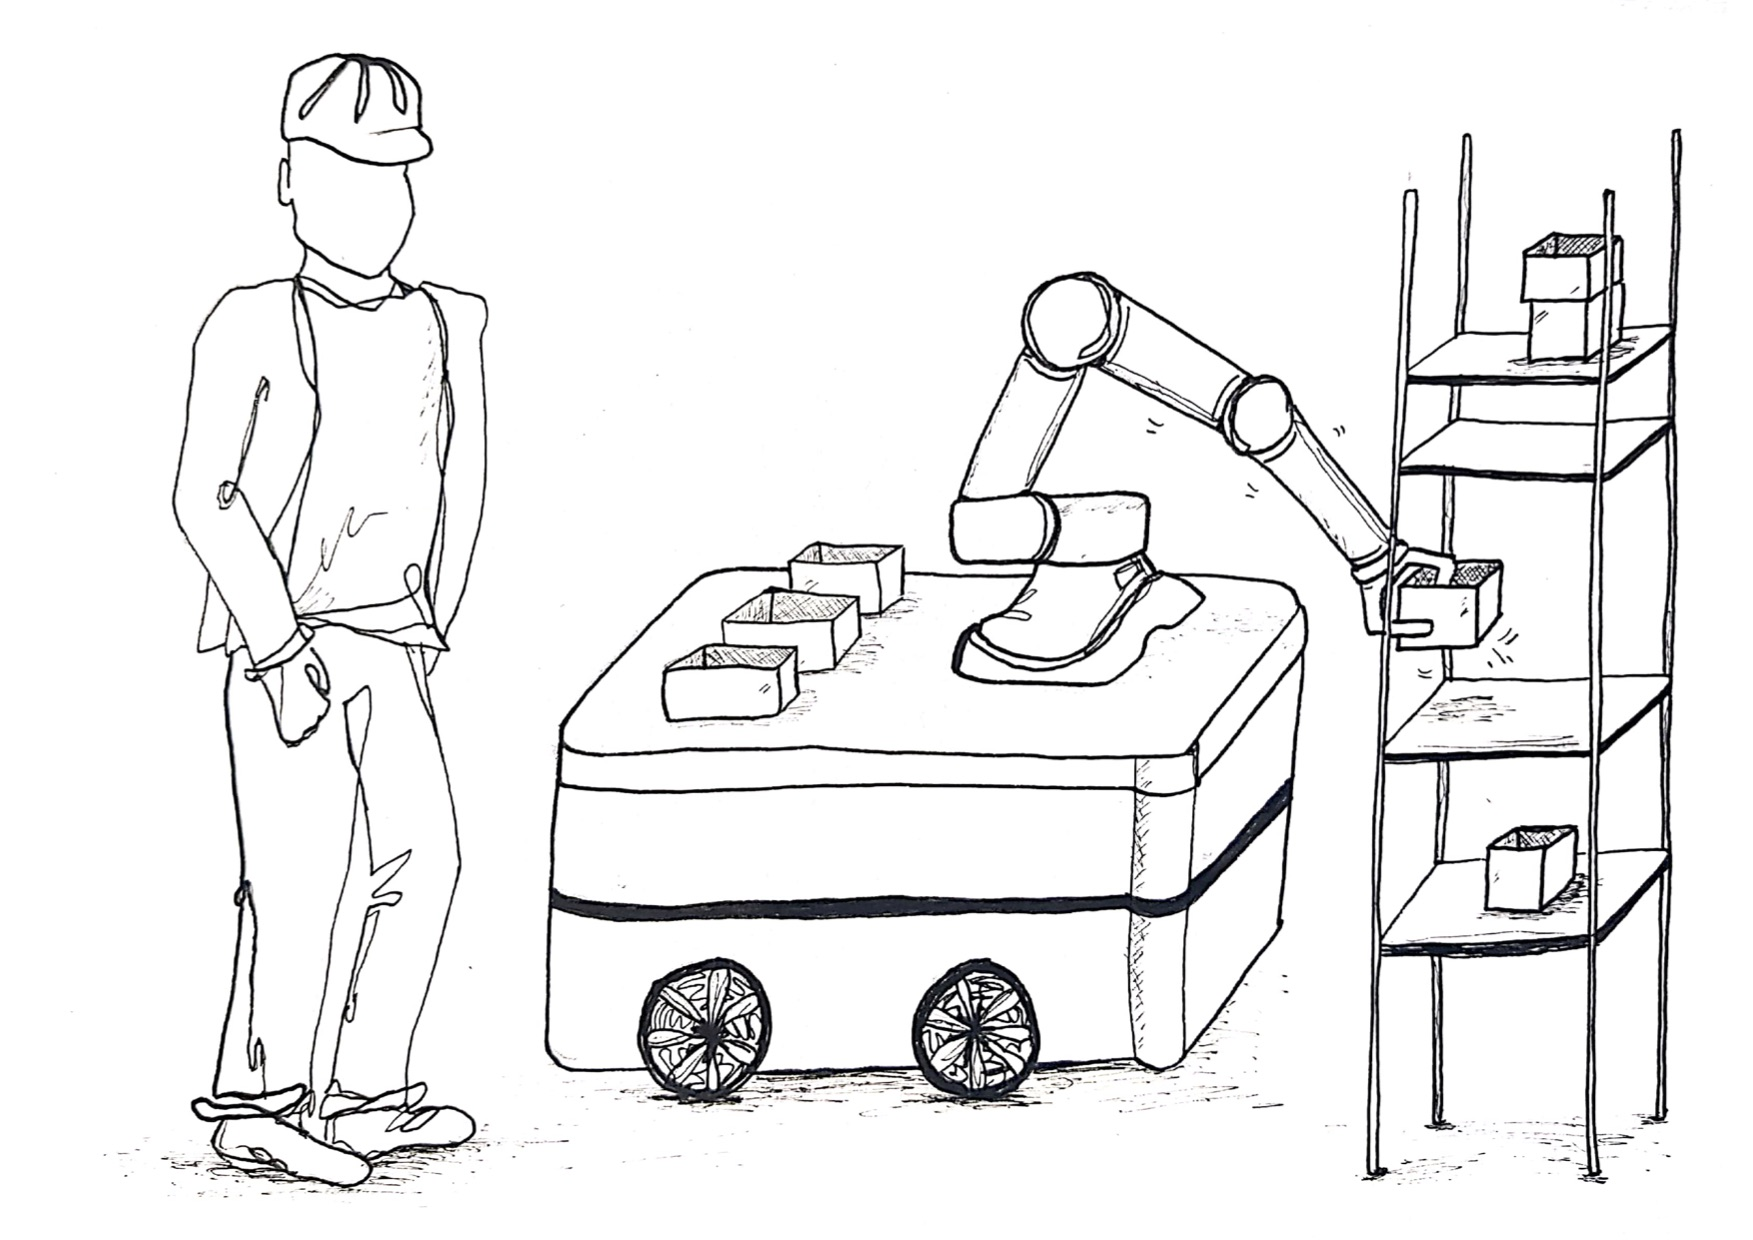 An AMR with a mounted collaborative robot picking up boxes